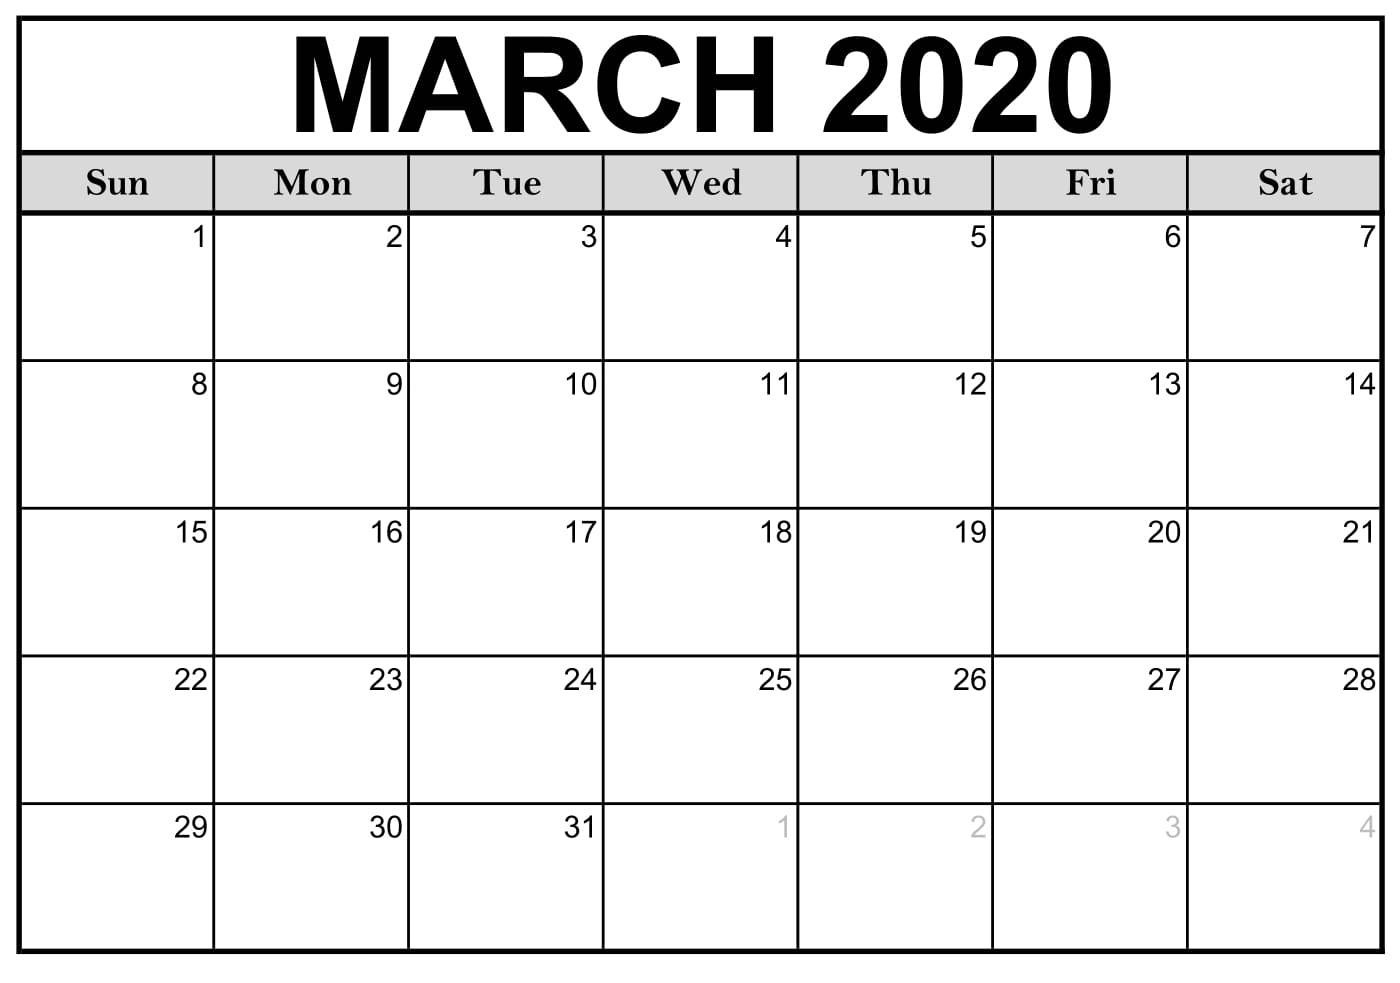 March 2020 Calendar Free Printable Notes - 2019 Calendars